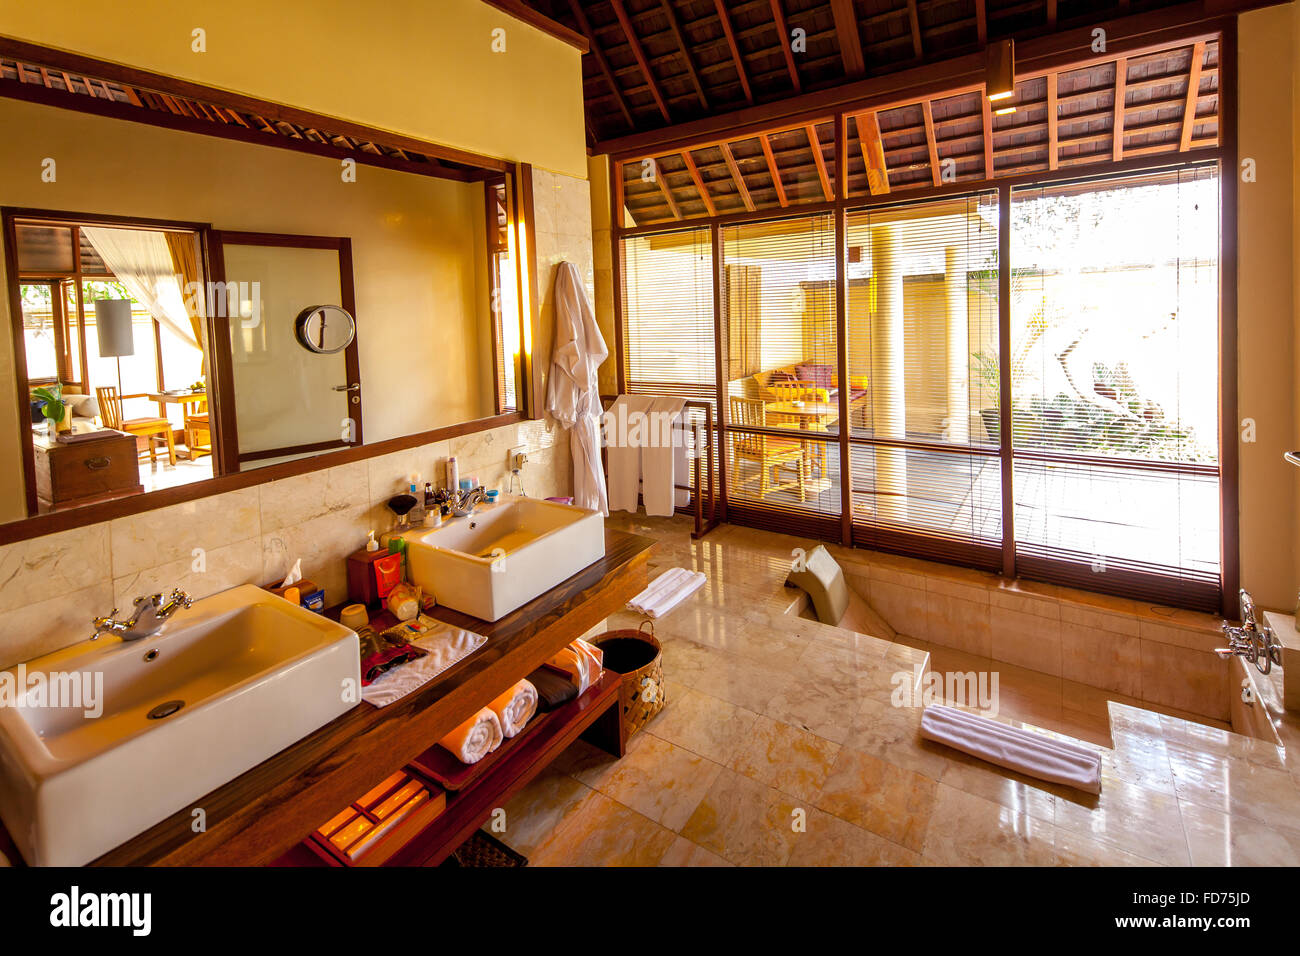 Bathroom in a good hotel, tourism, travel, Ubud, Bali, Indonesia, Asia - Stock Image